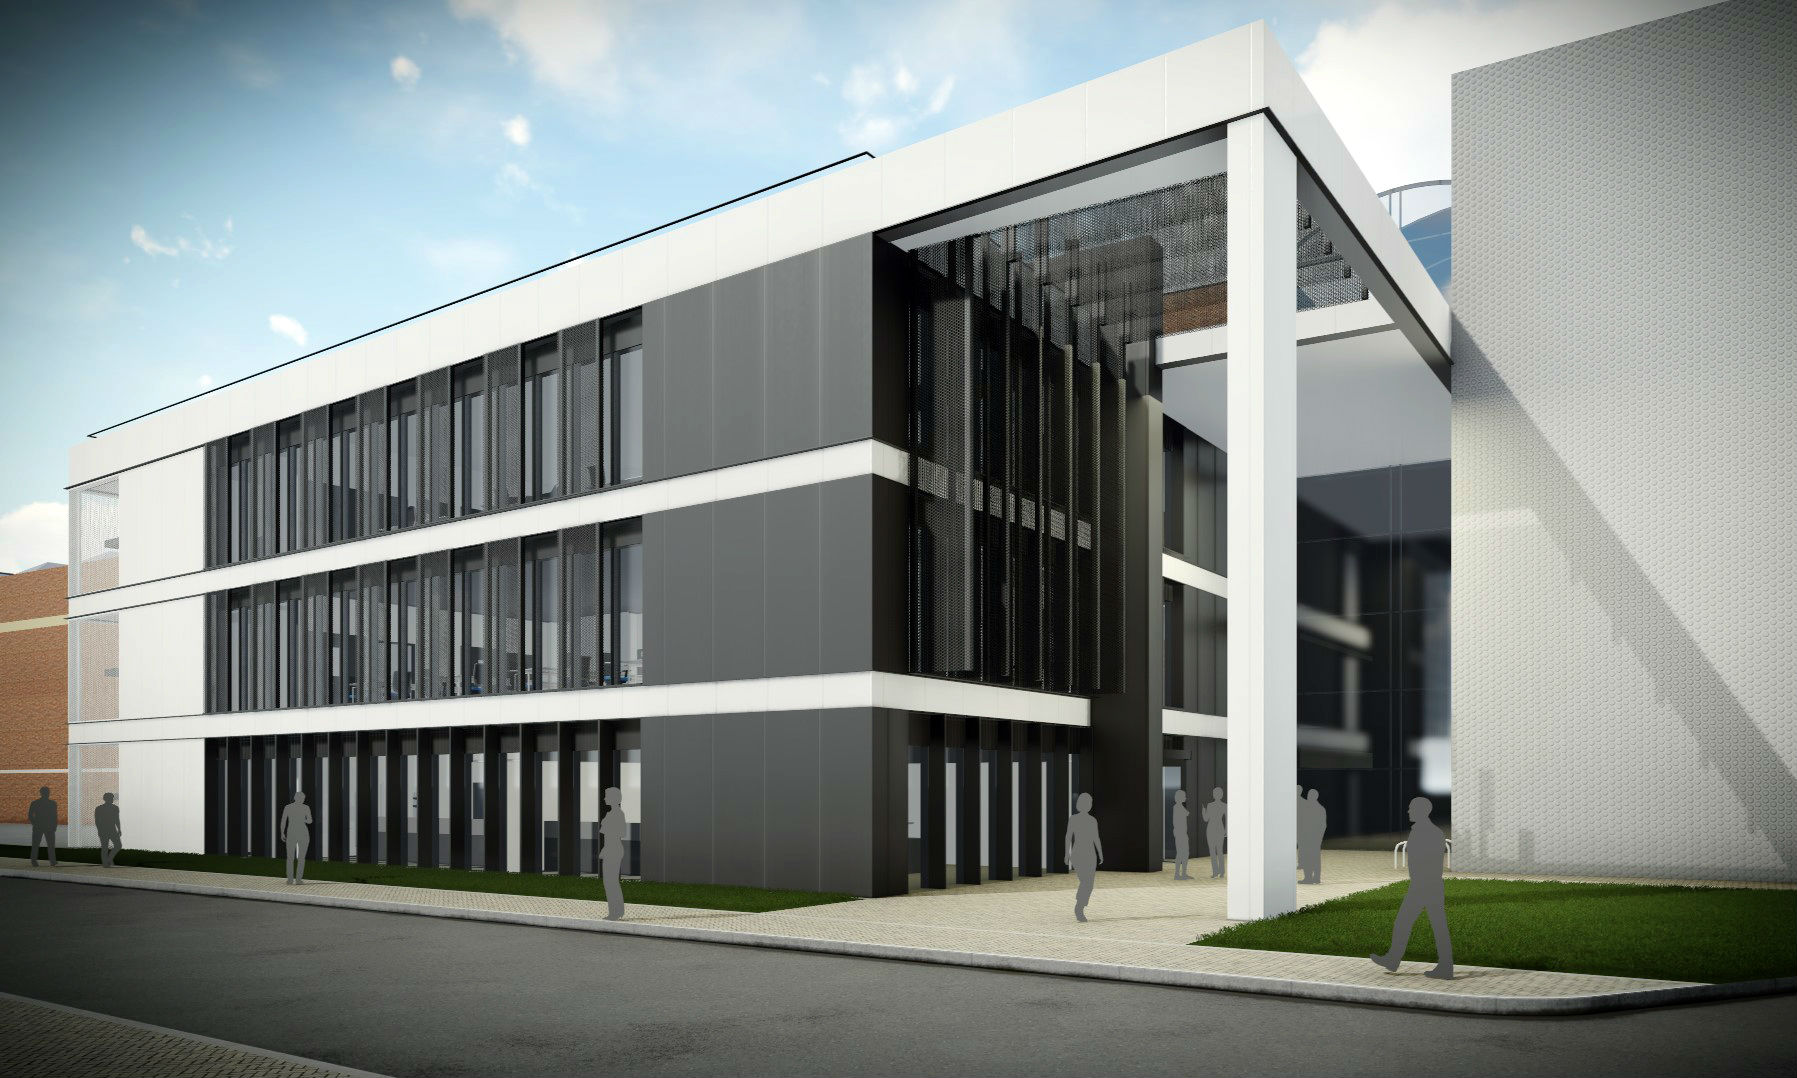 Industrial-scale research & testing facilities for Cranfield University